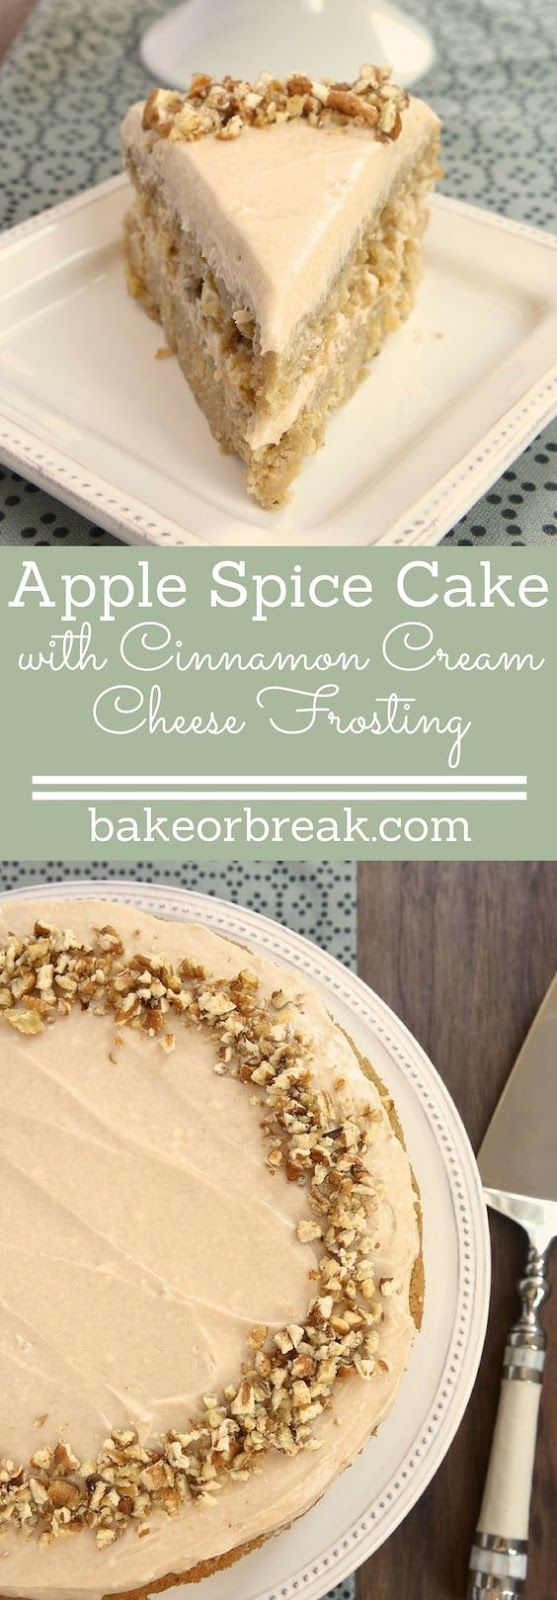 Apple Spice Cake with Cinnamon Cream Cheese Frosting Source: www.bakeorbreak.com